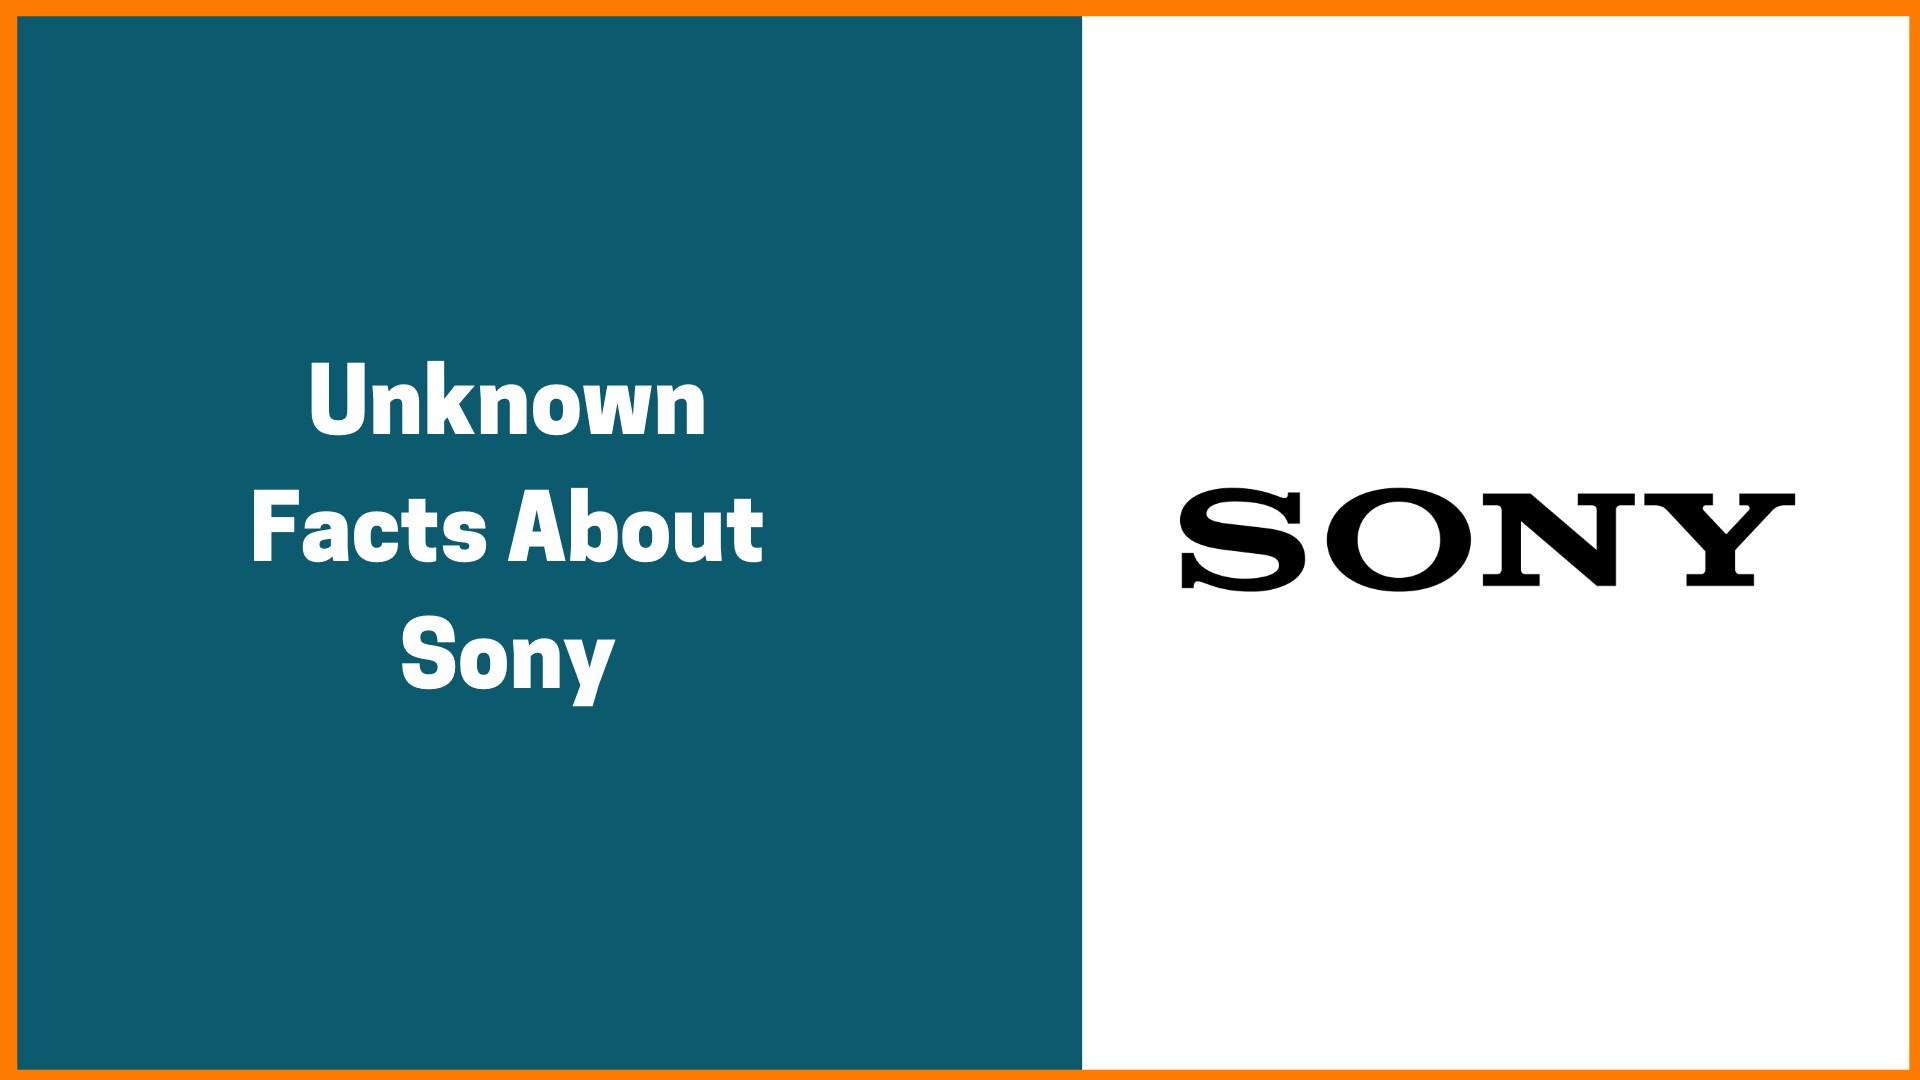 What Wikipedia can't tell you about Sony - Unknown Facts of Sony